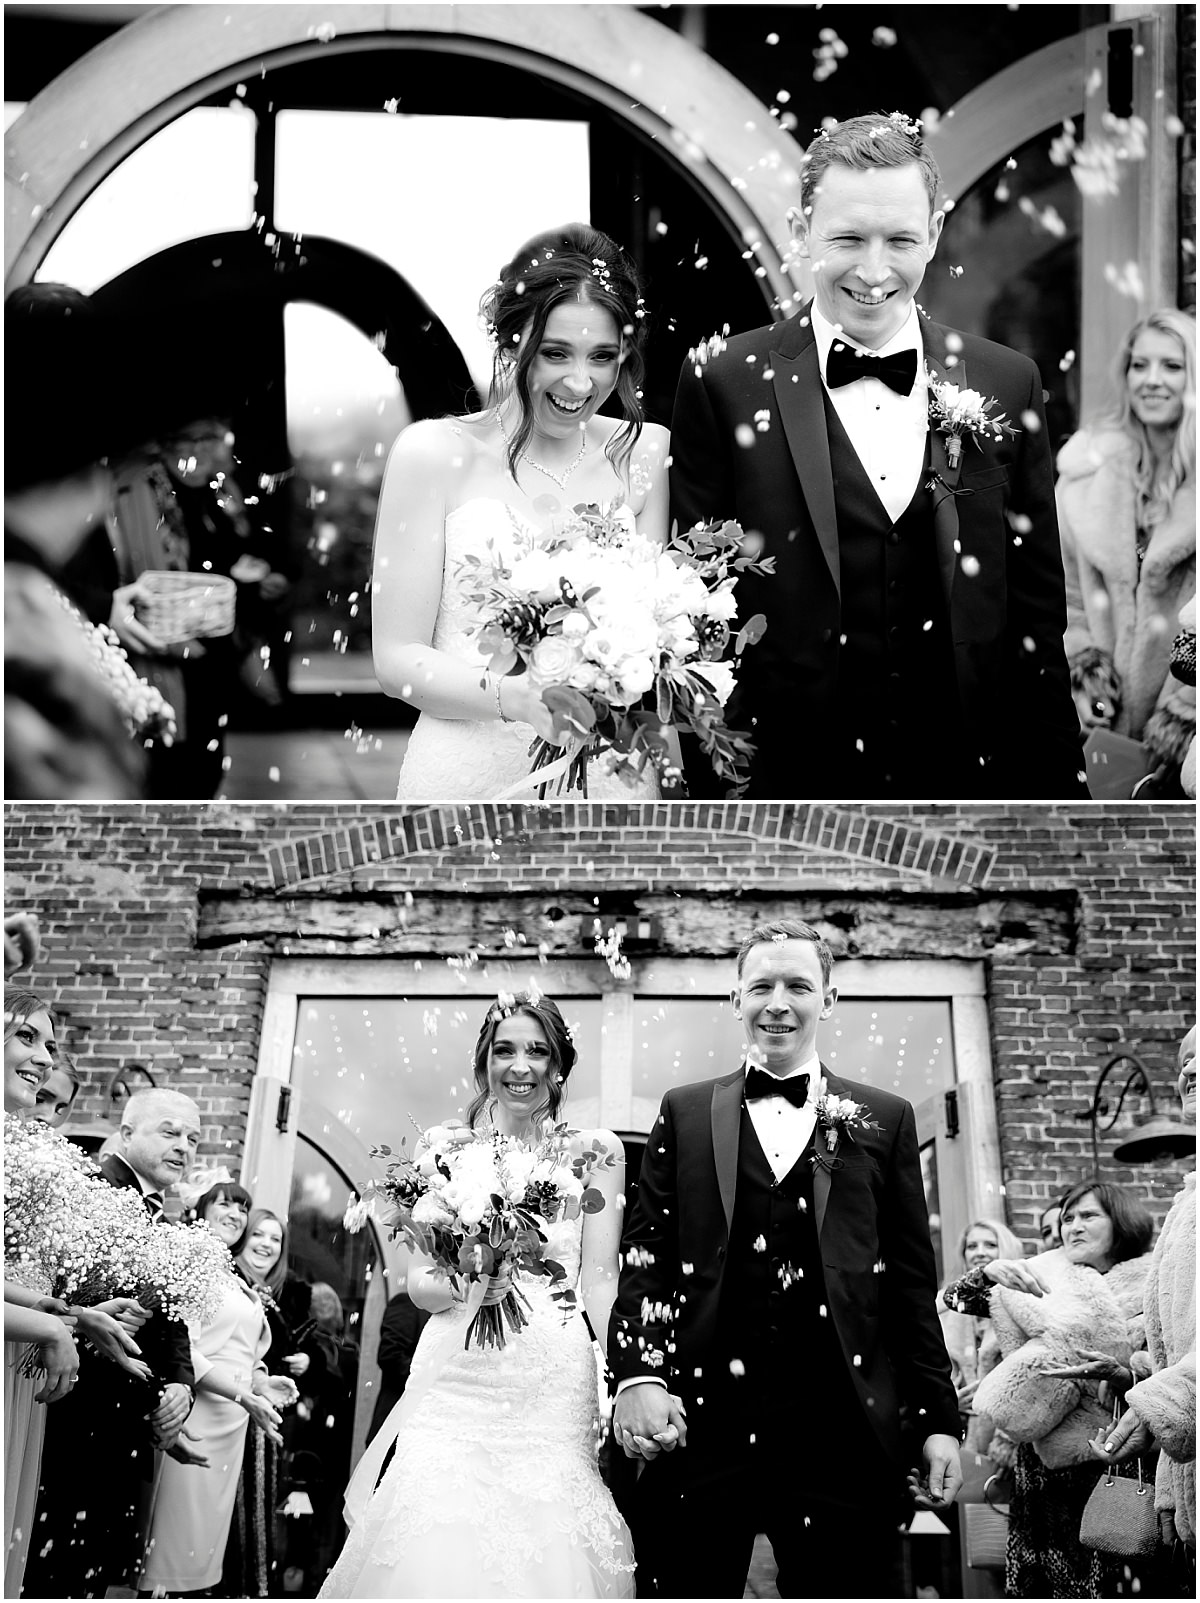 Winter Wedding at Hazel Gap Barn Confetti